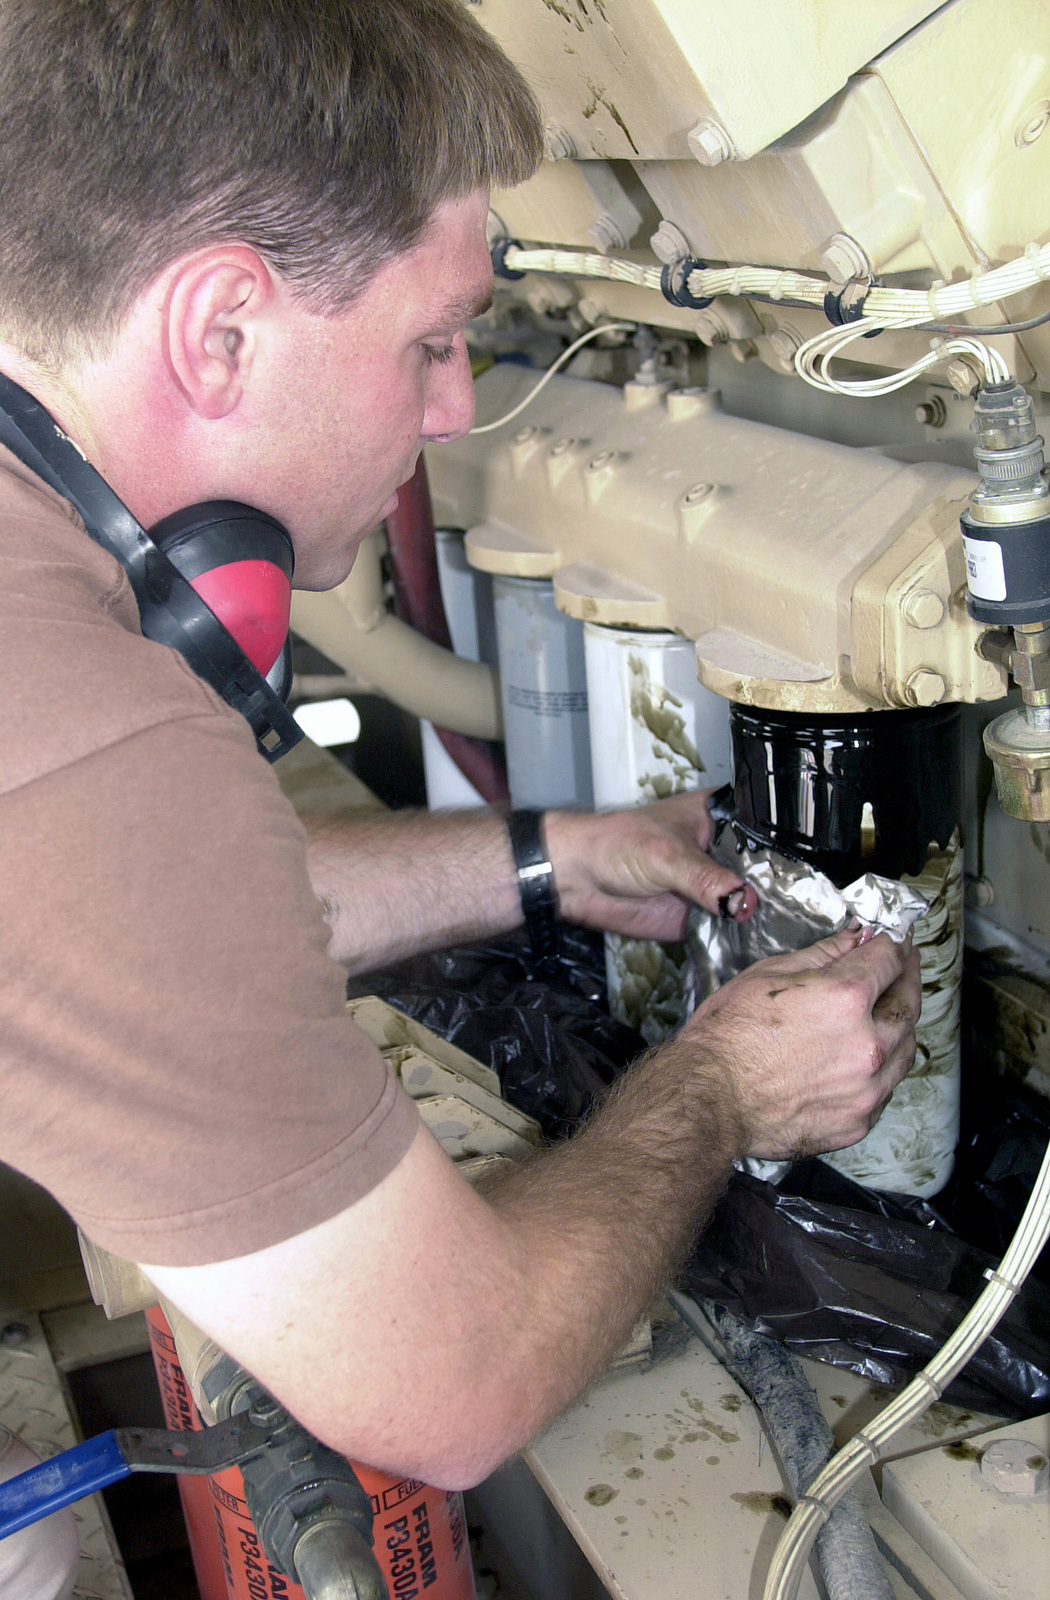 US Air Force (USAF) STAFF Sergeant (SSGT) Jonathan Quigley, Power Production SPECIALIST, 186th Civil Engineering Squadron (CES) Mississippi Air National Guard (ANG), changes the oil filters on a MEP-12 generator compressor at an undisclosed location in support of Operation ENDURING FREEDOM